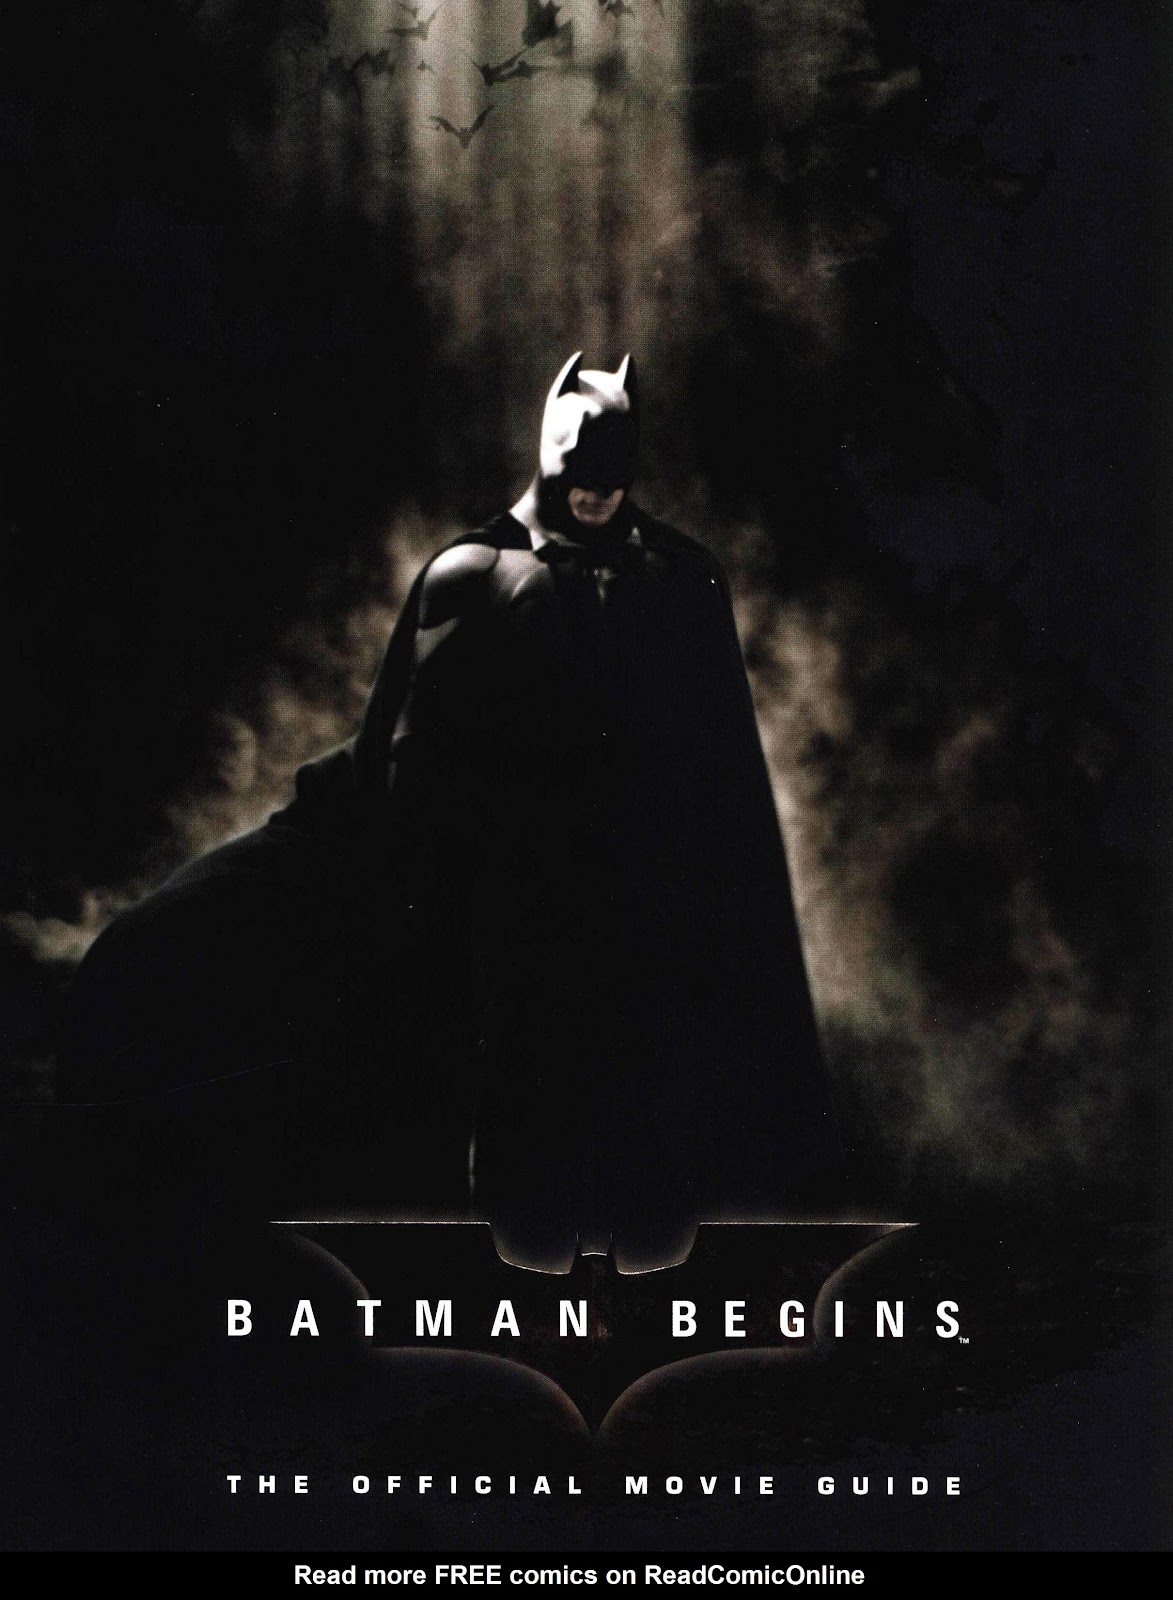 Read online Batman Begins: The Official Movie Guide comic -  Issue # TPB (Part 1) - 1